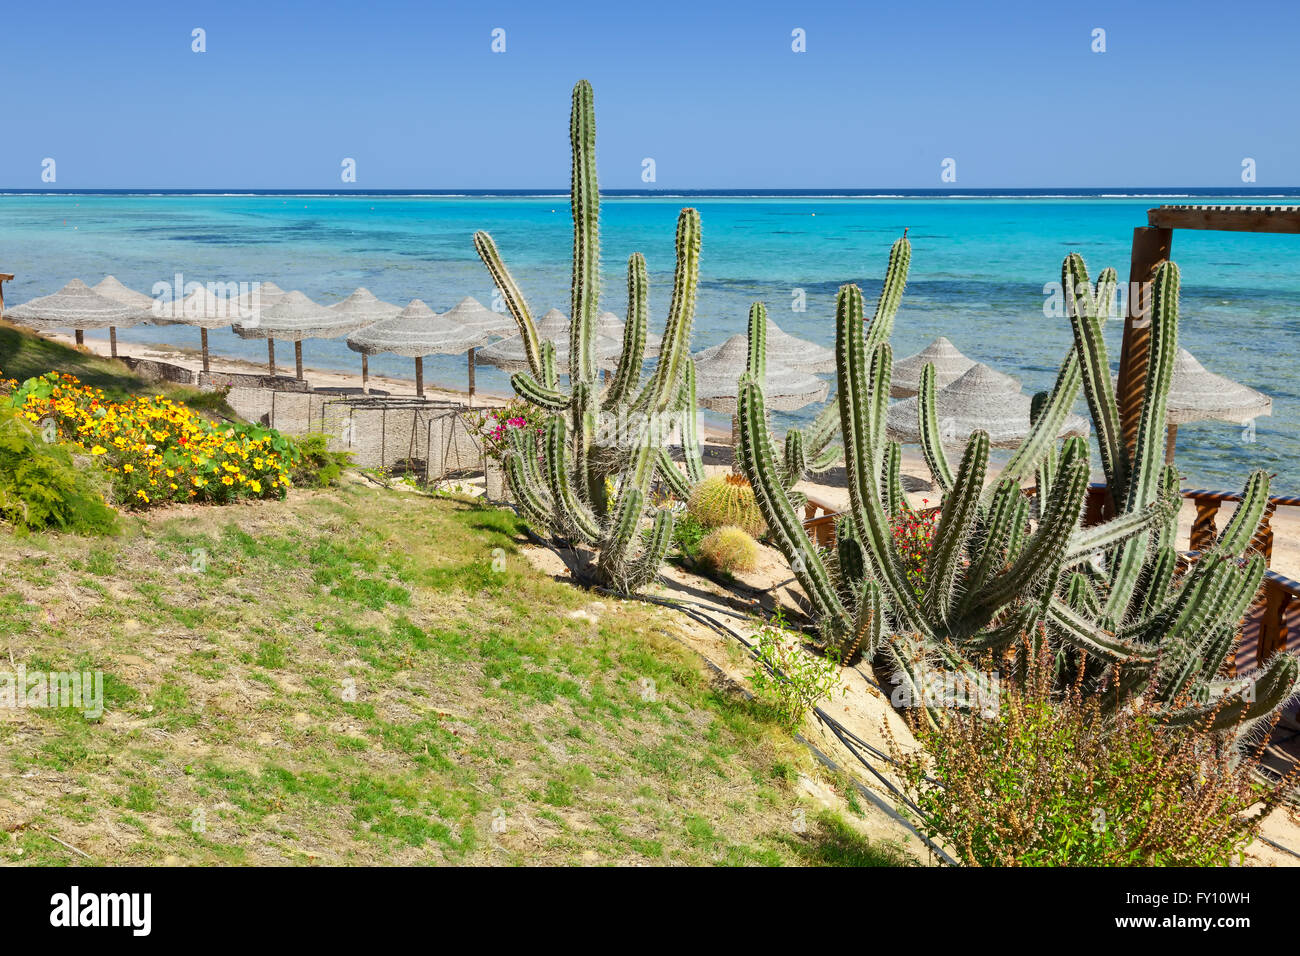 beach and sea in Marsa Alam, Red Sea, Egypt - Stock Image